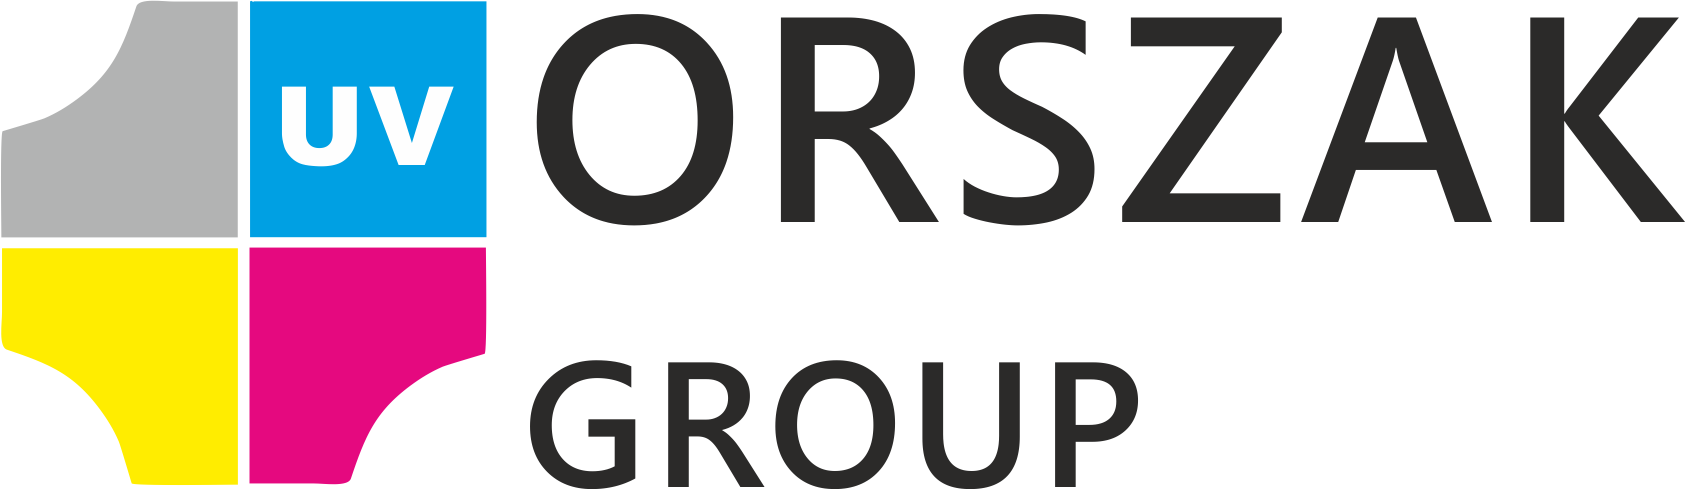 Orszak Group - UV